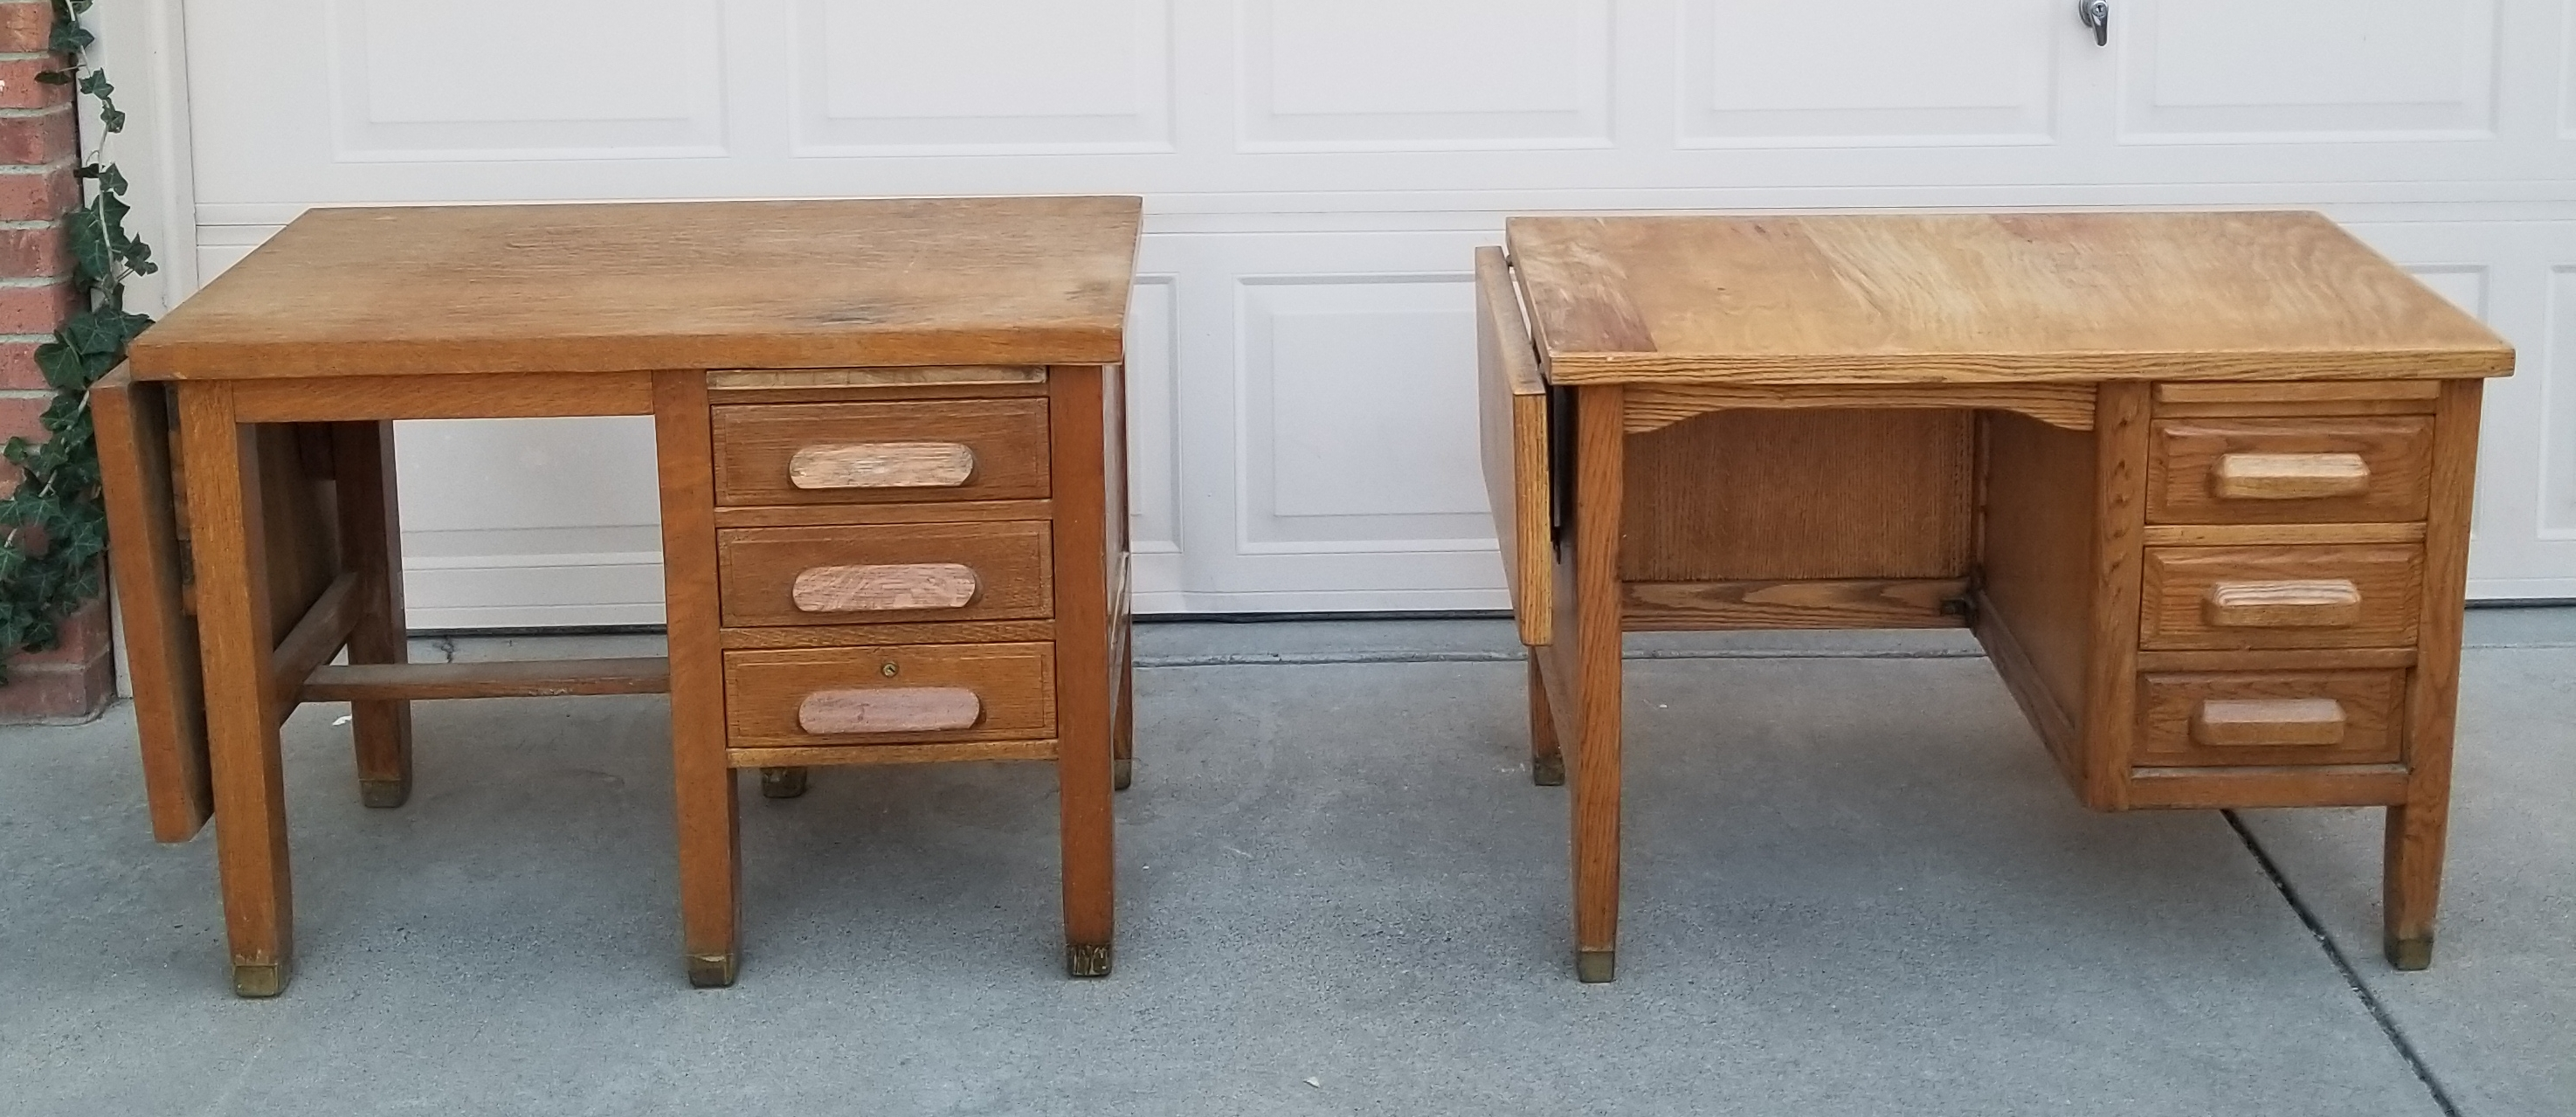 2 Antique Solid Oak Short Desks